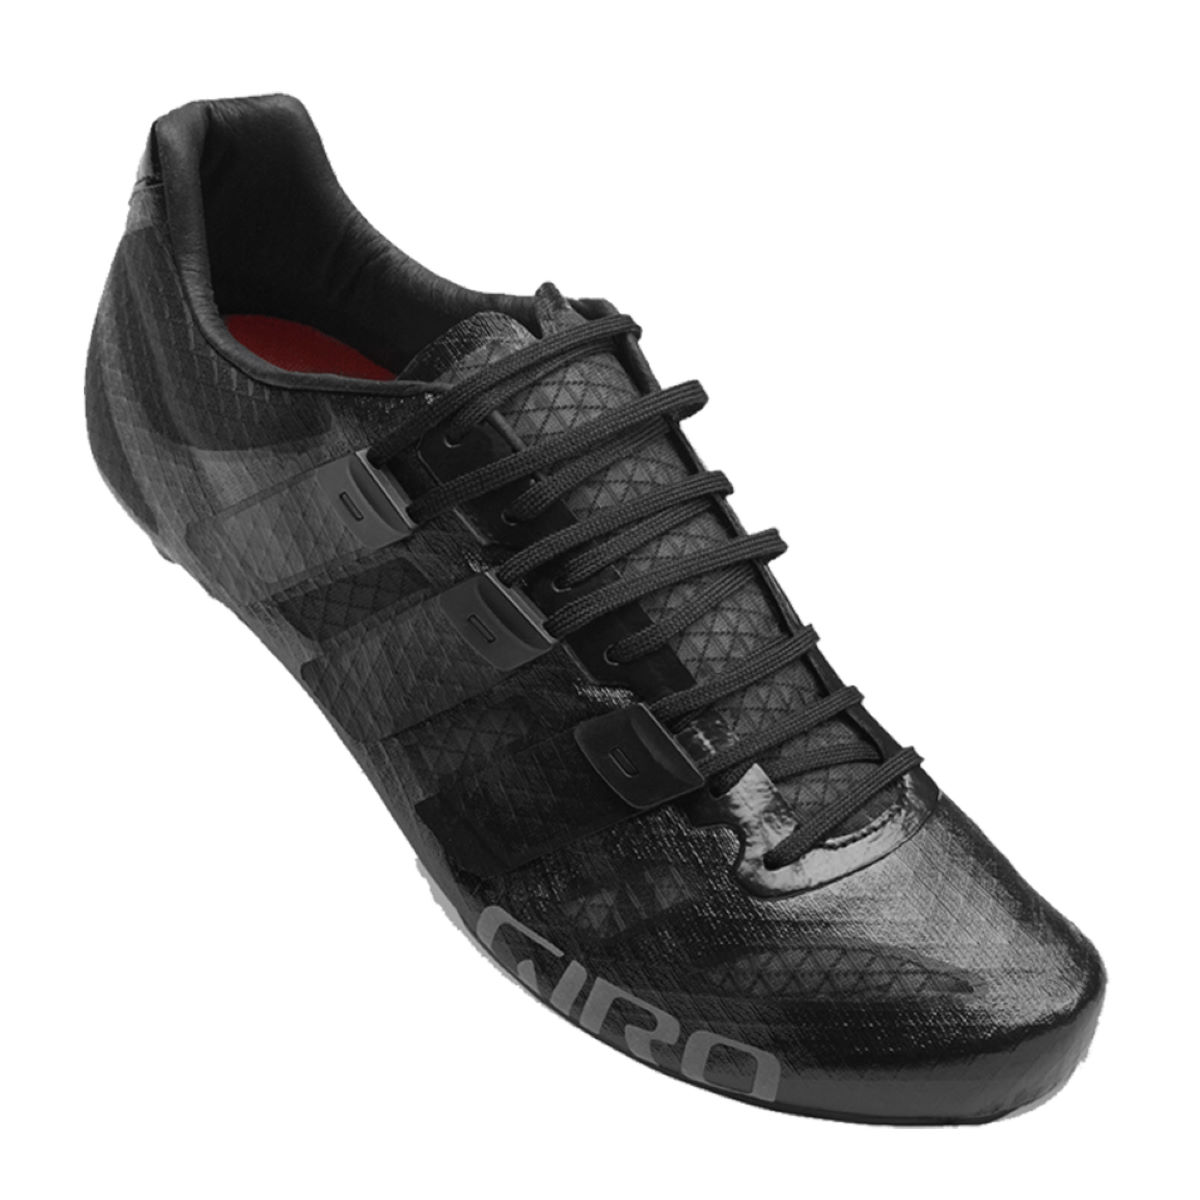 Zapatillas de carretera Giro Techlace Prolight - Zapatillas para bicicletas de carretera